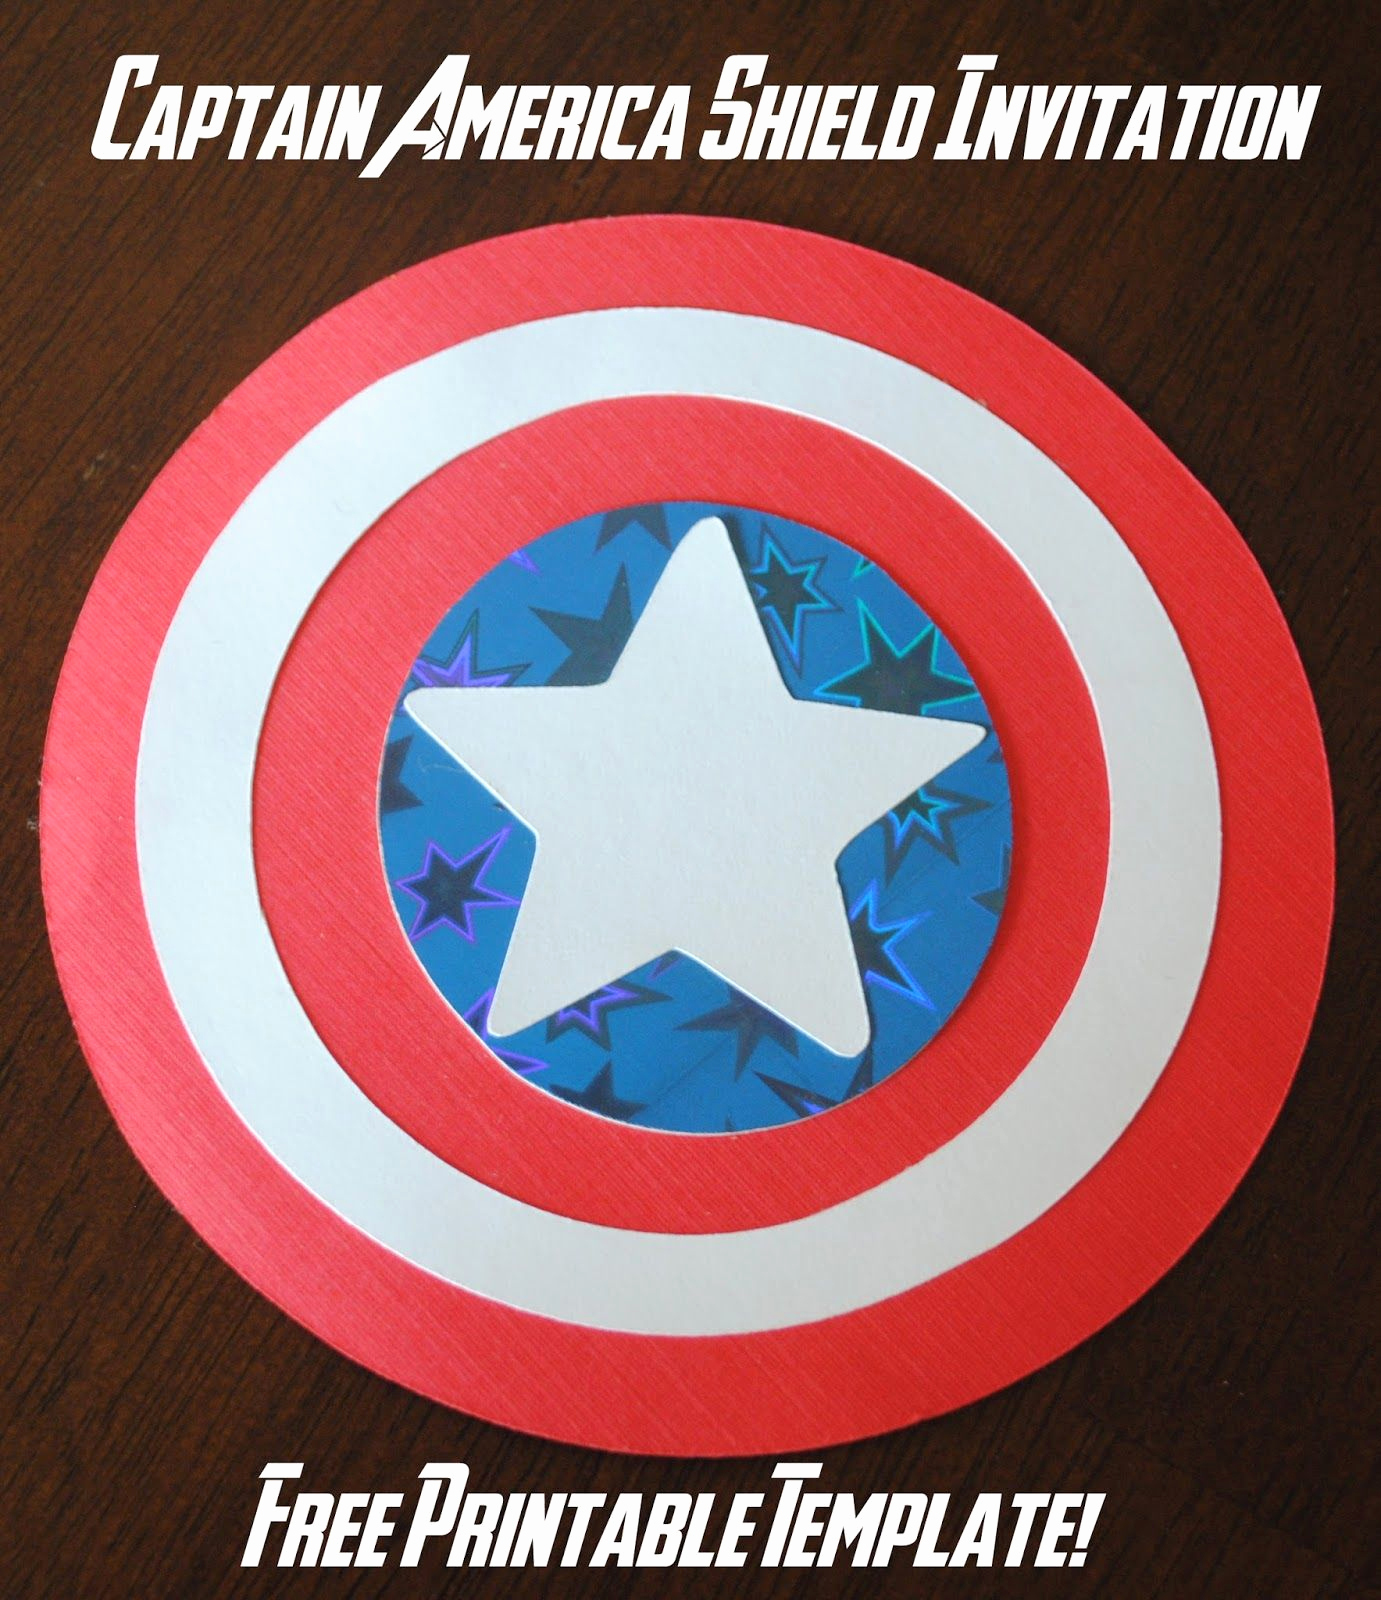 Captain America Invitation Template Inspirational Captain America Shield Invitations Free Printable Template